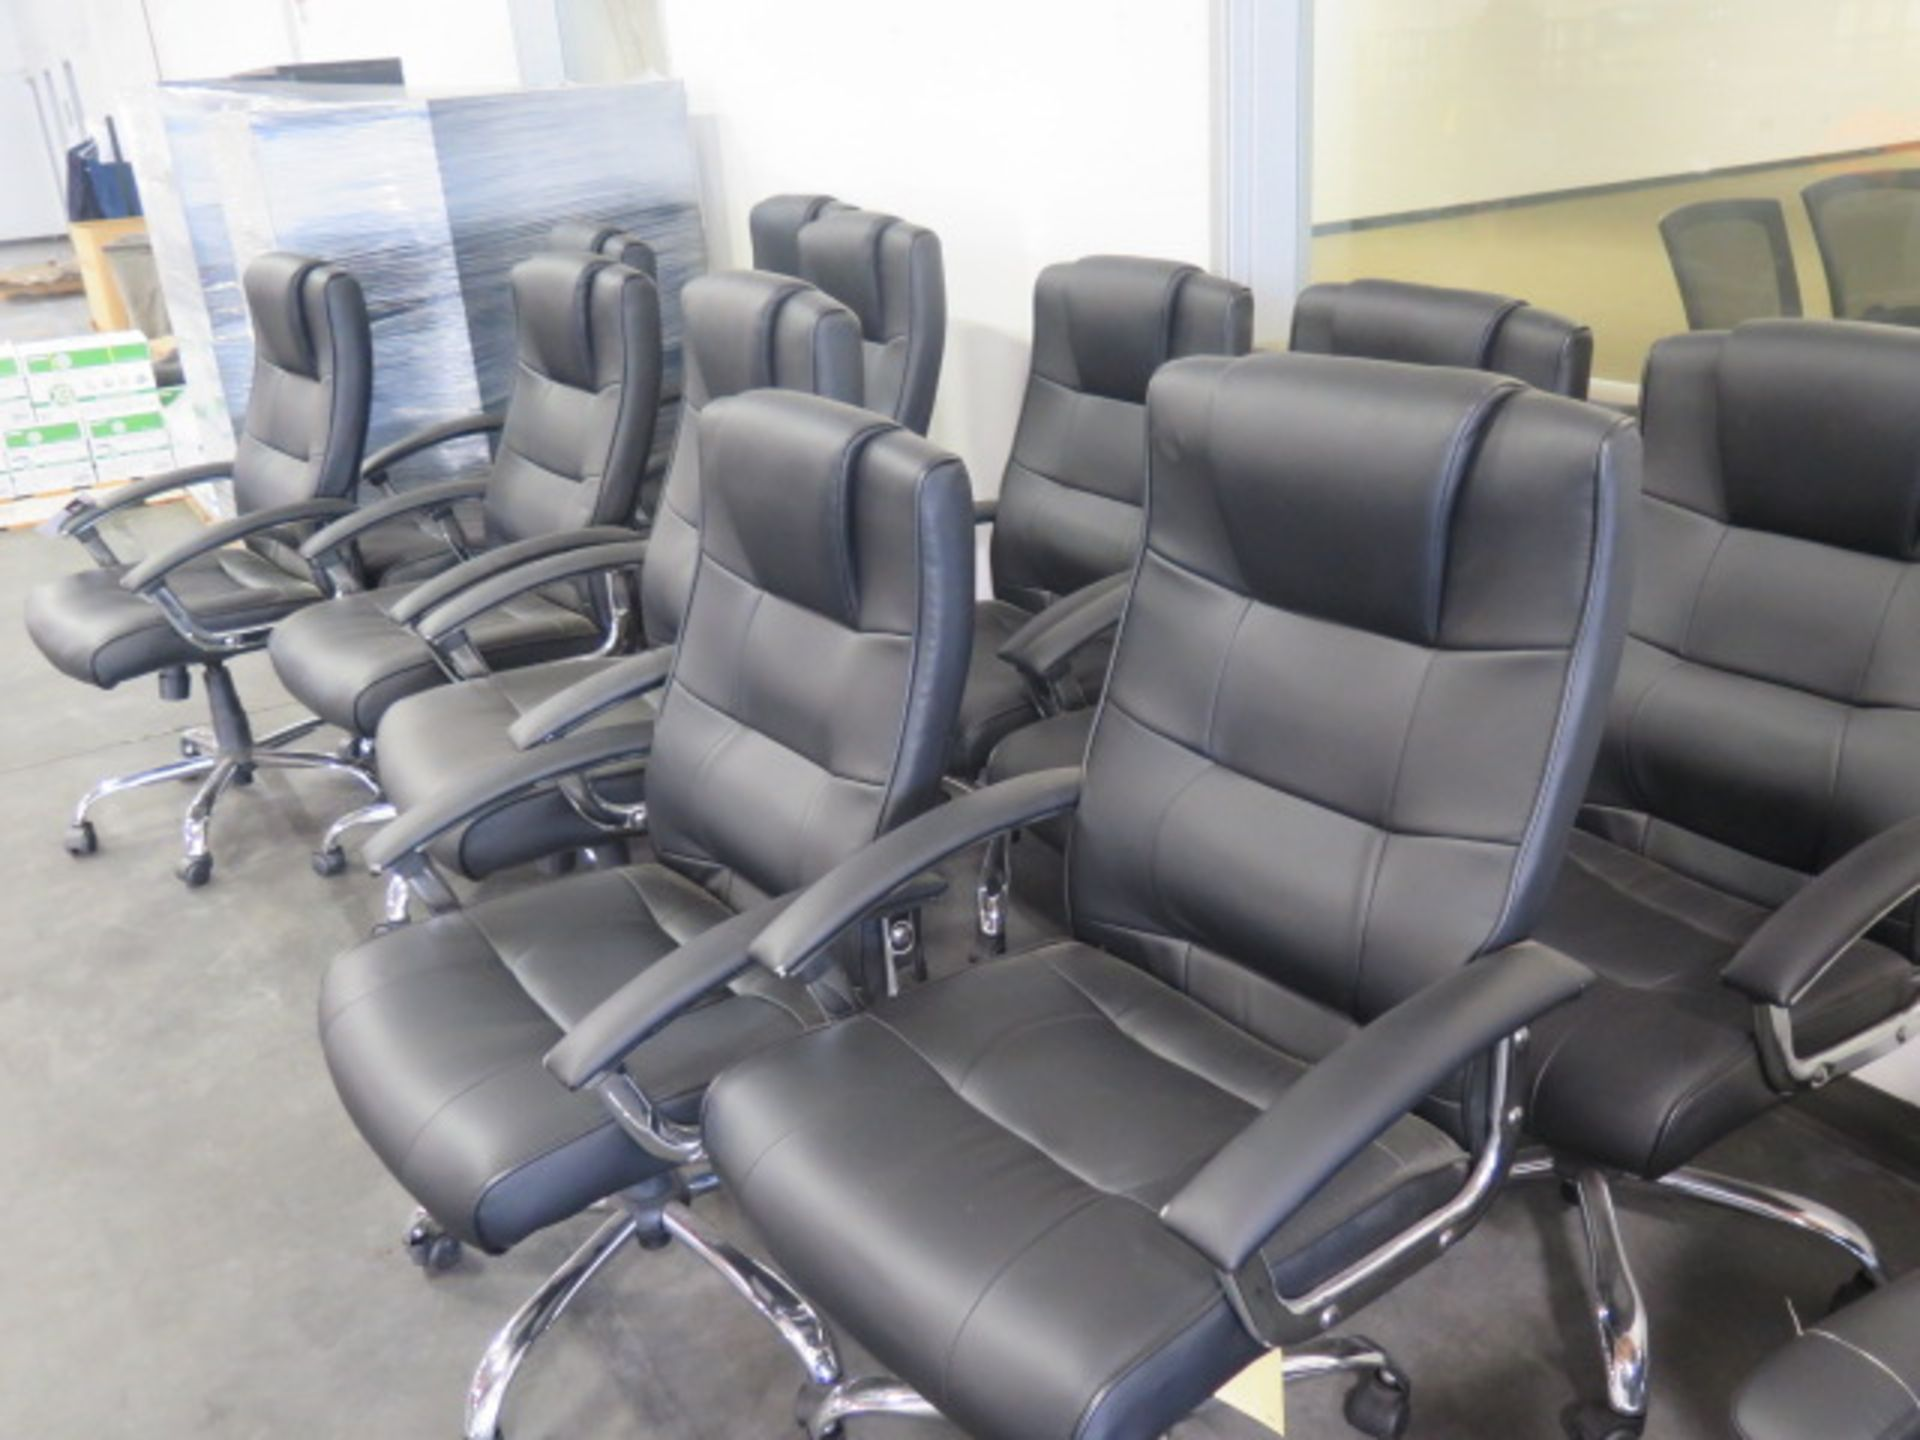 Conference / Office Chairs (11) (SOLD AS-IS - NO WARRANTY) - Image 3 of 4